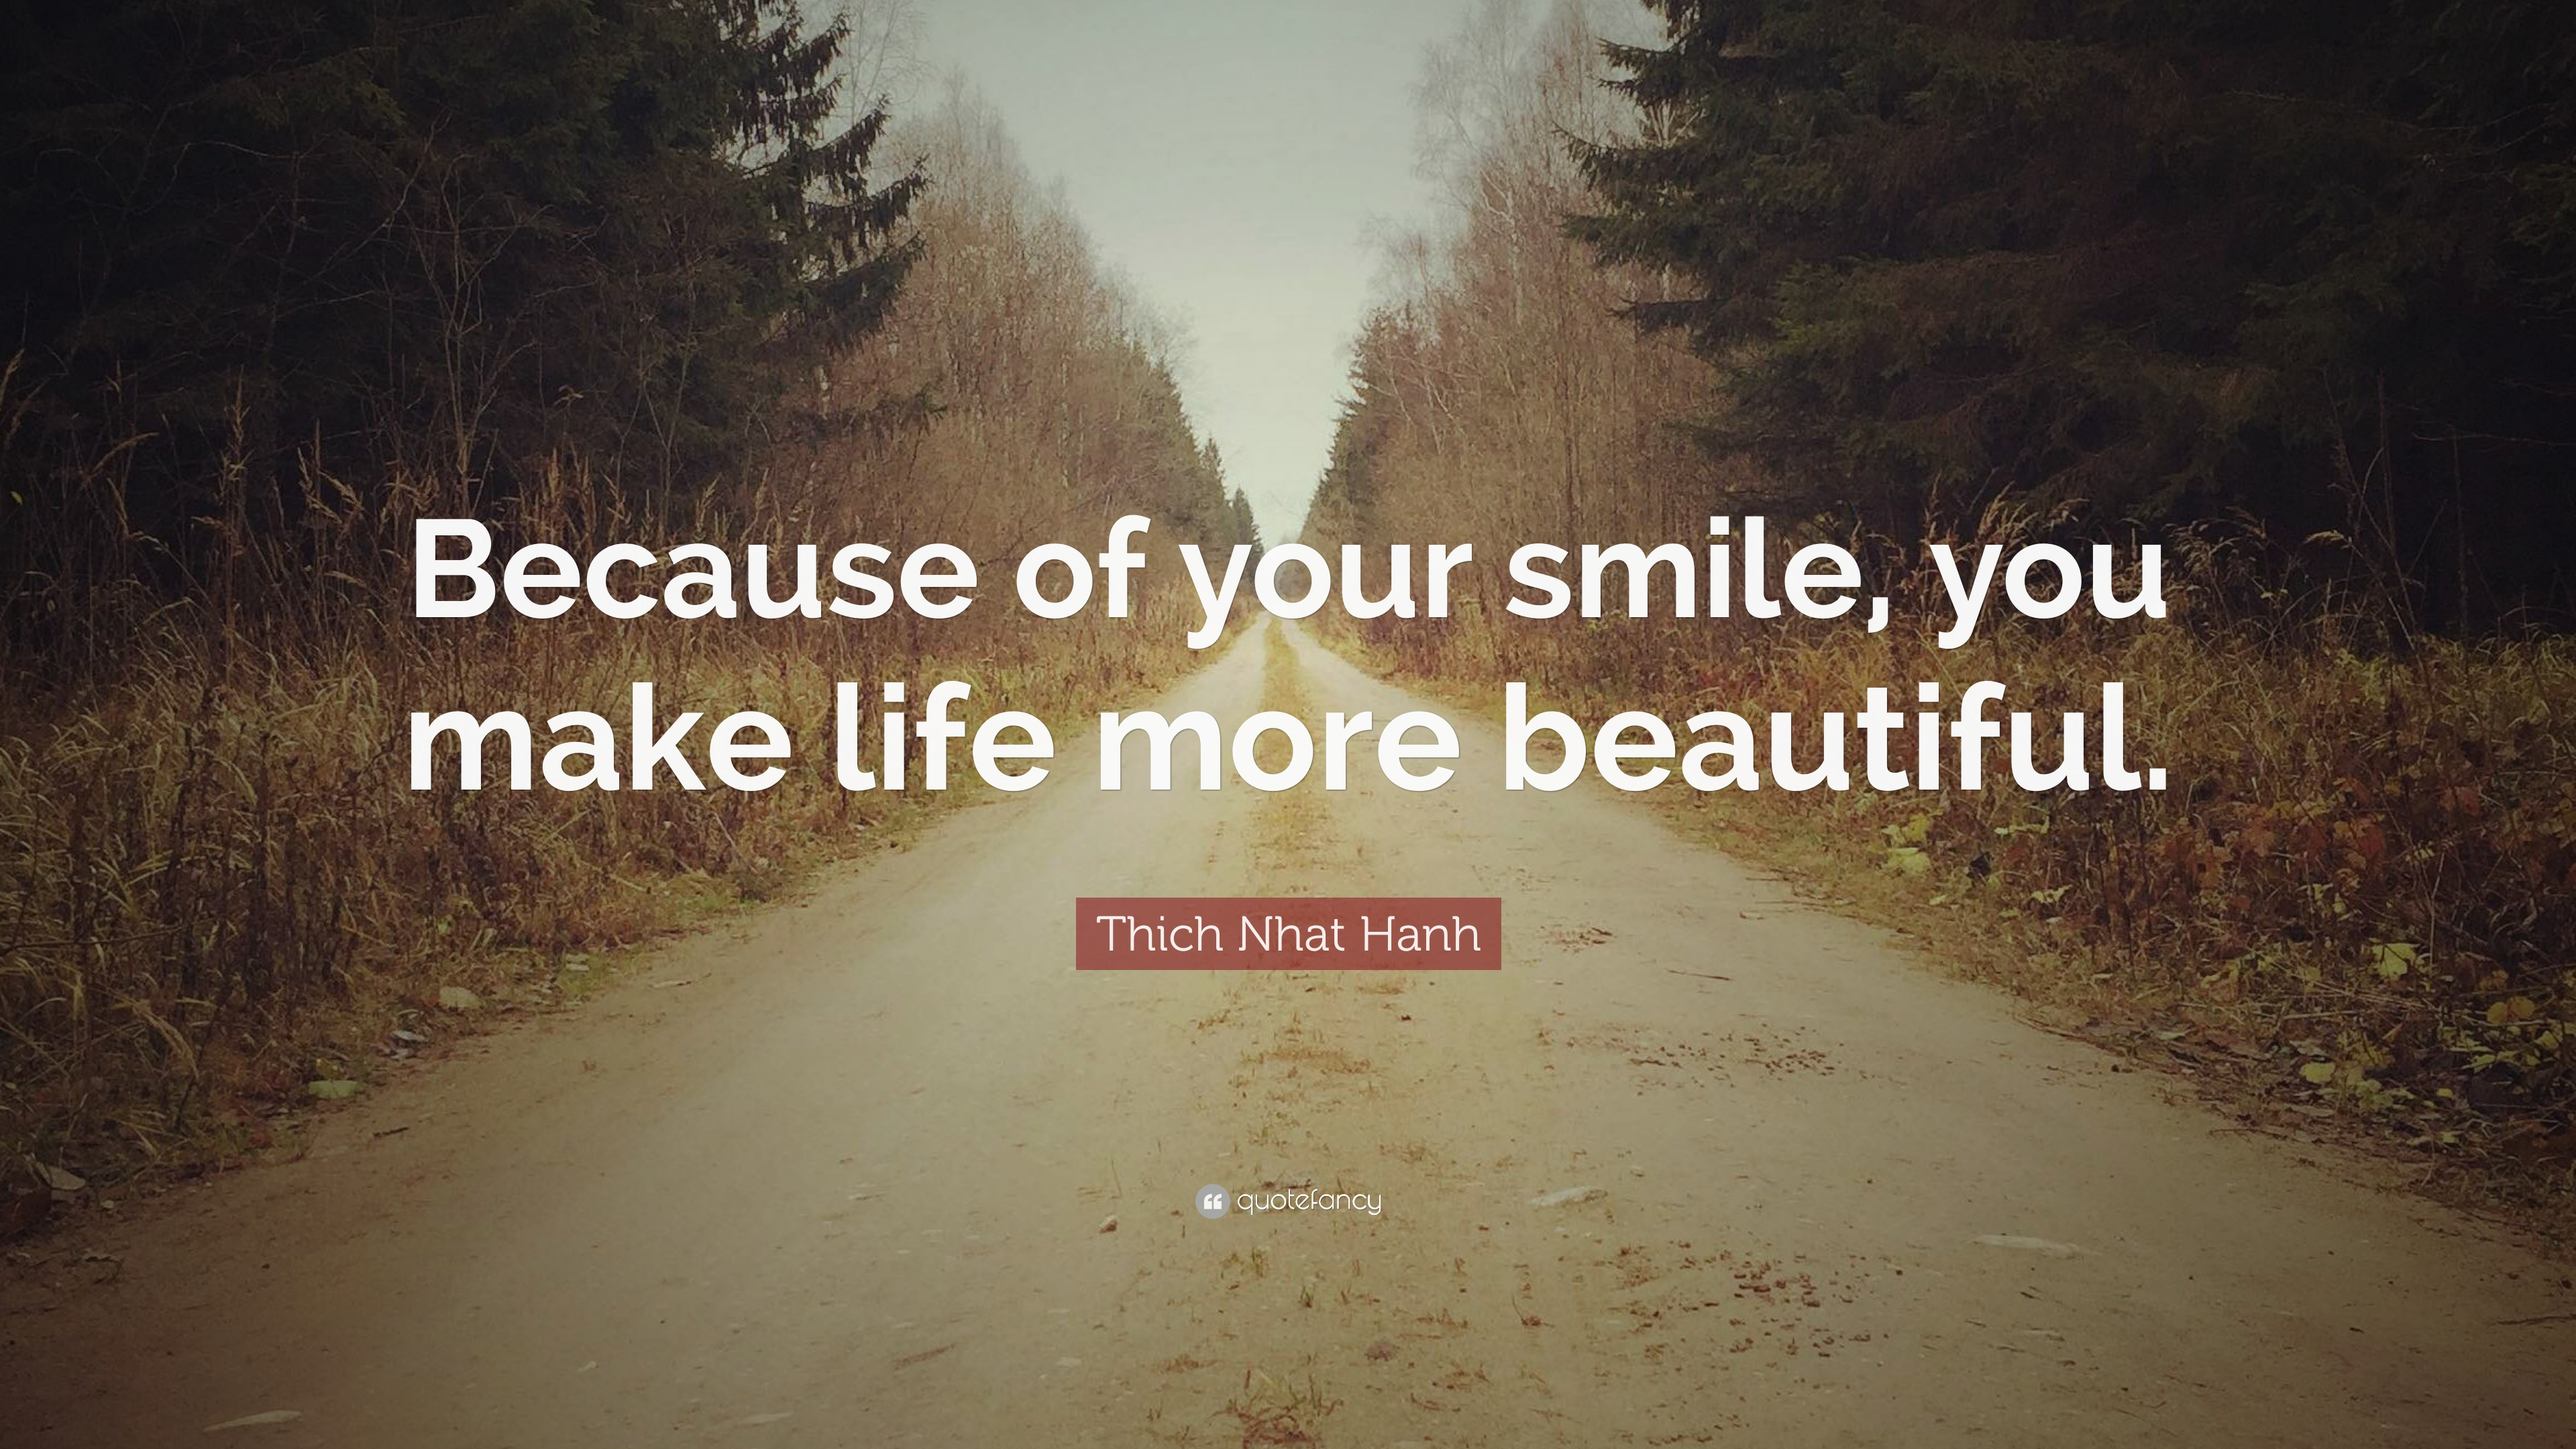 Thich Nhat Hanh Quote Because Of Your Smile You Make Life More